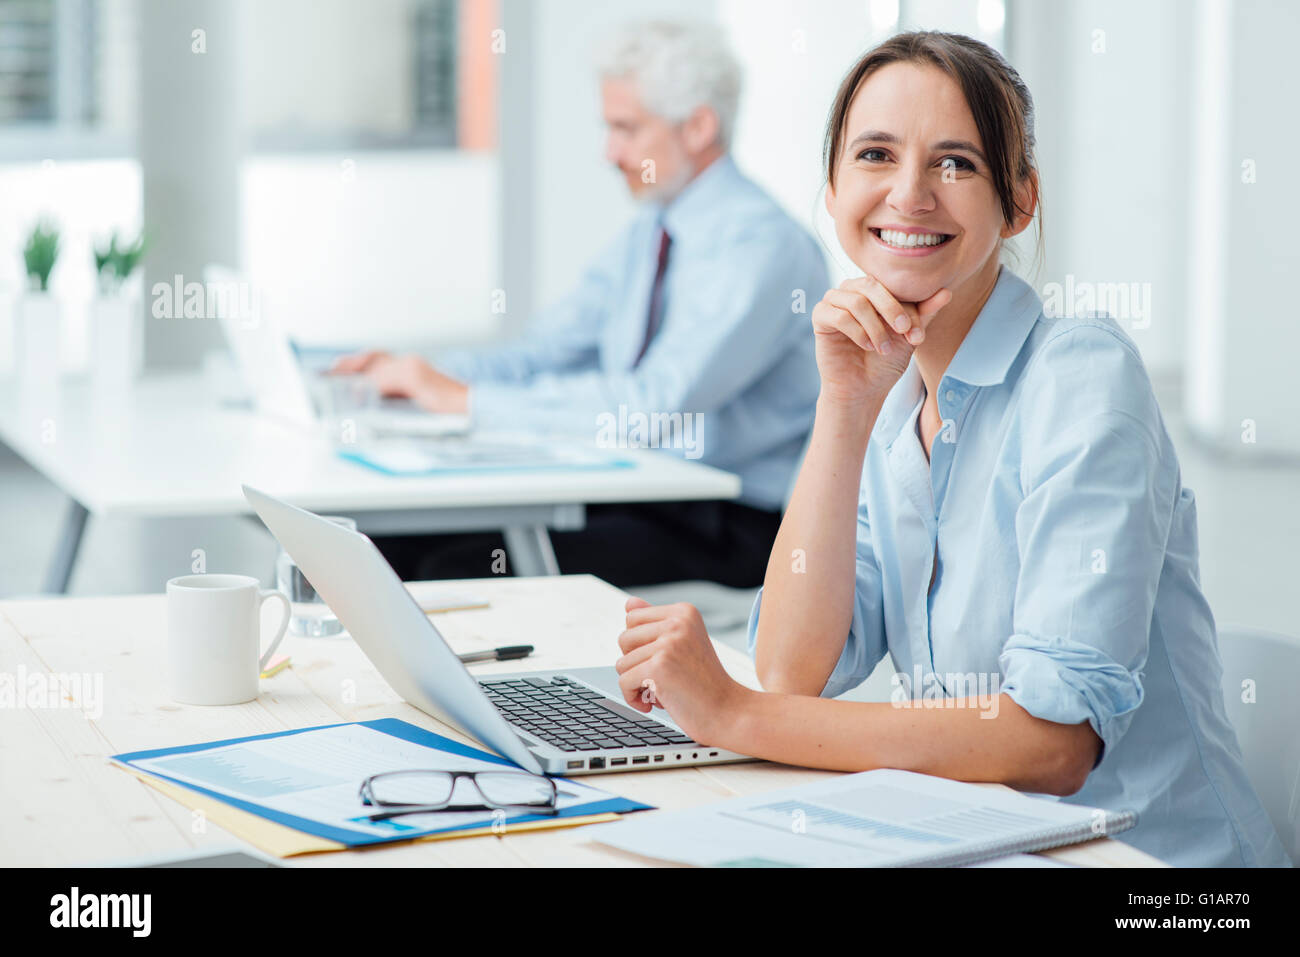 Smiling young business woman sitting at office desk and working with a laptop, she is looking at camera - Stock Image